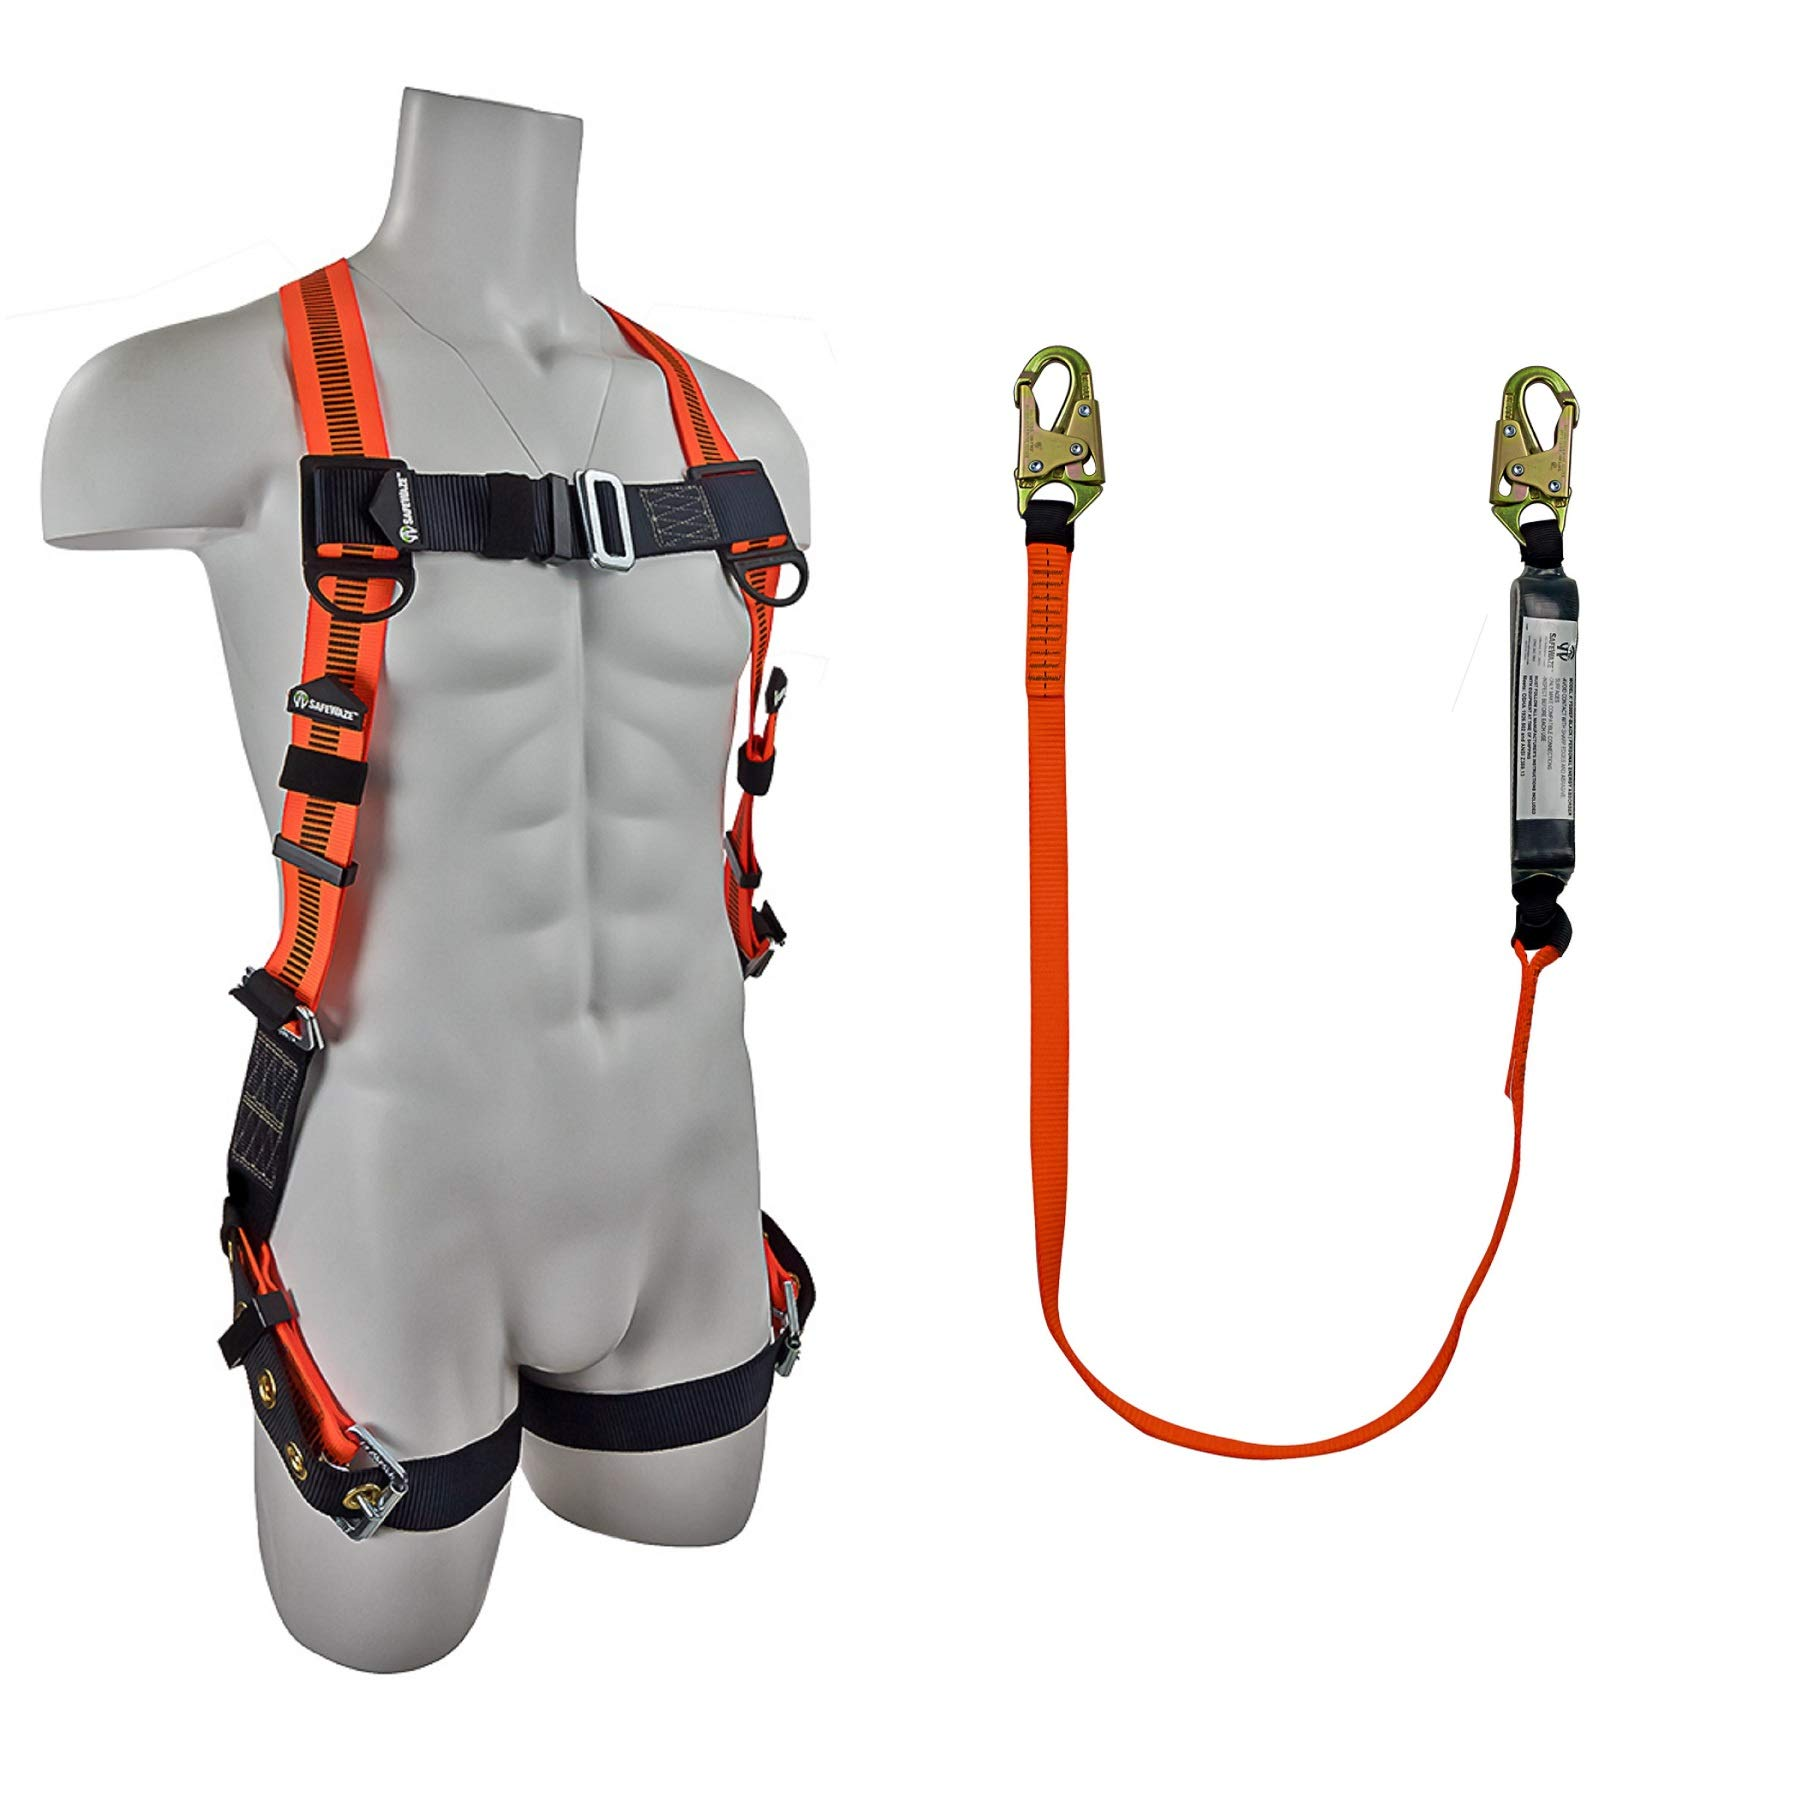 SafeWaze Fall Protection Safety Harness/Lanyard Combo - Universal Fit Harness with Grommet Legs and Single D-Ring - 6' Shock Absorbing Lanyard with Snap Hooks (FS99185-E / FS88560-E)